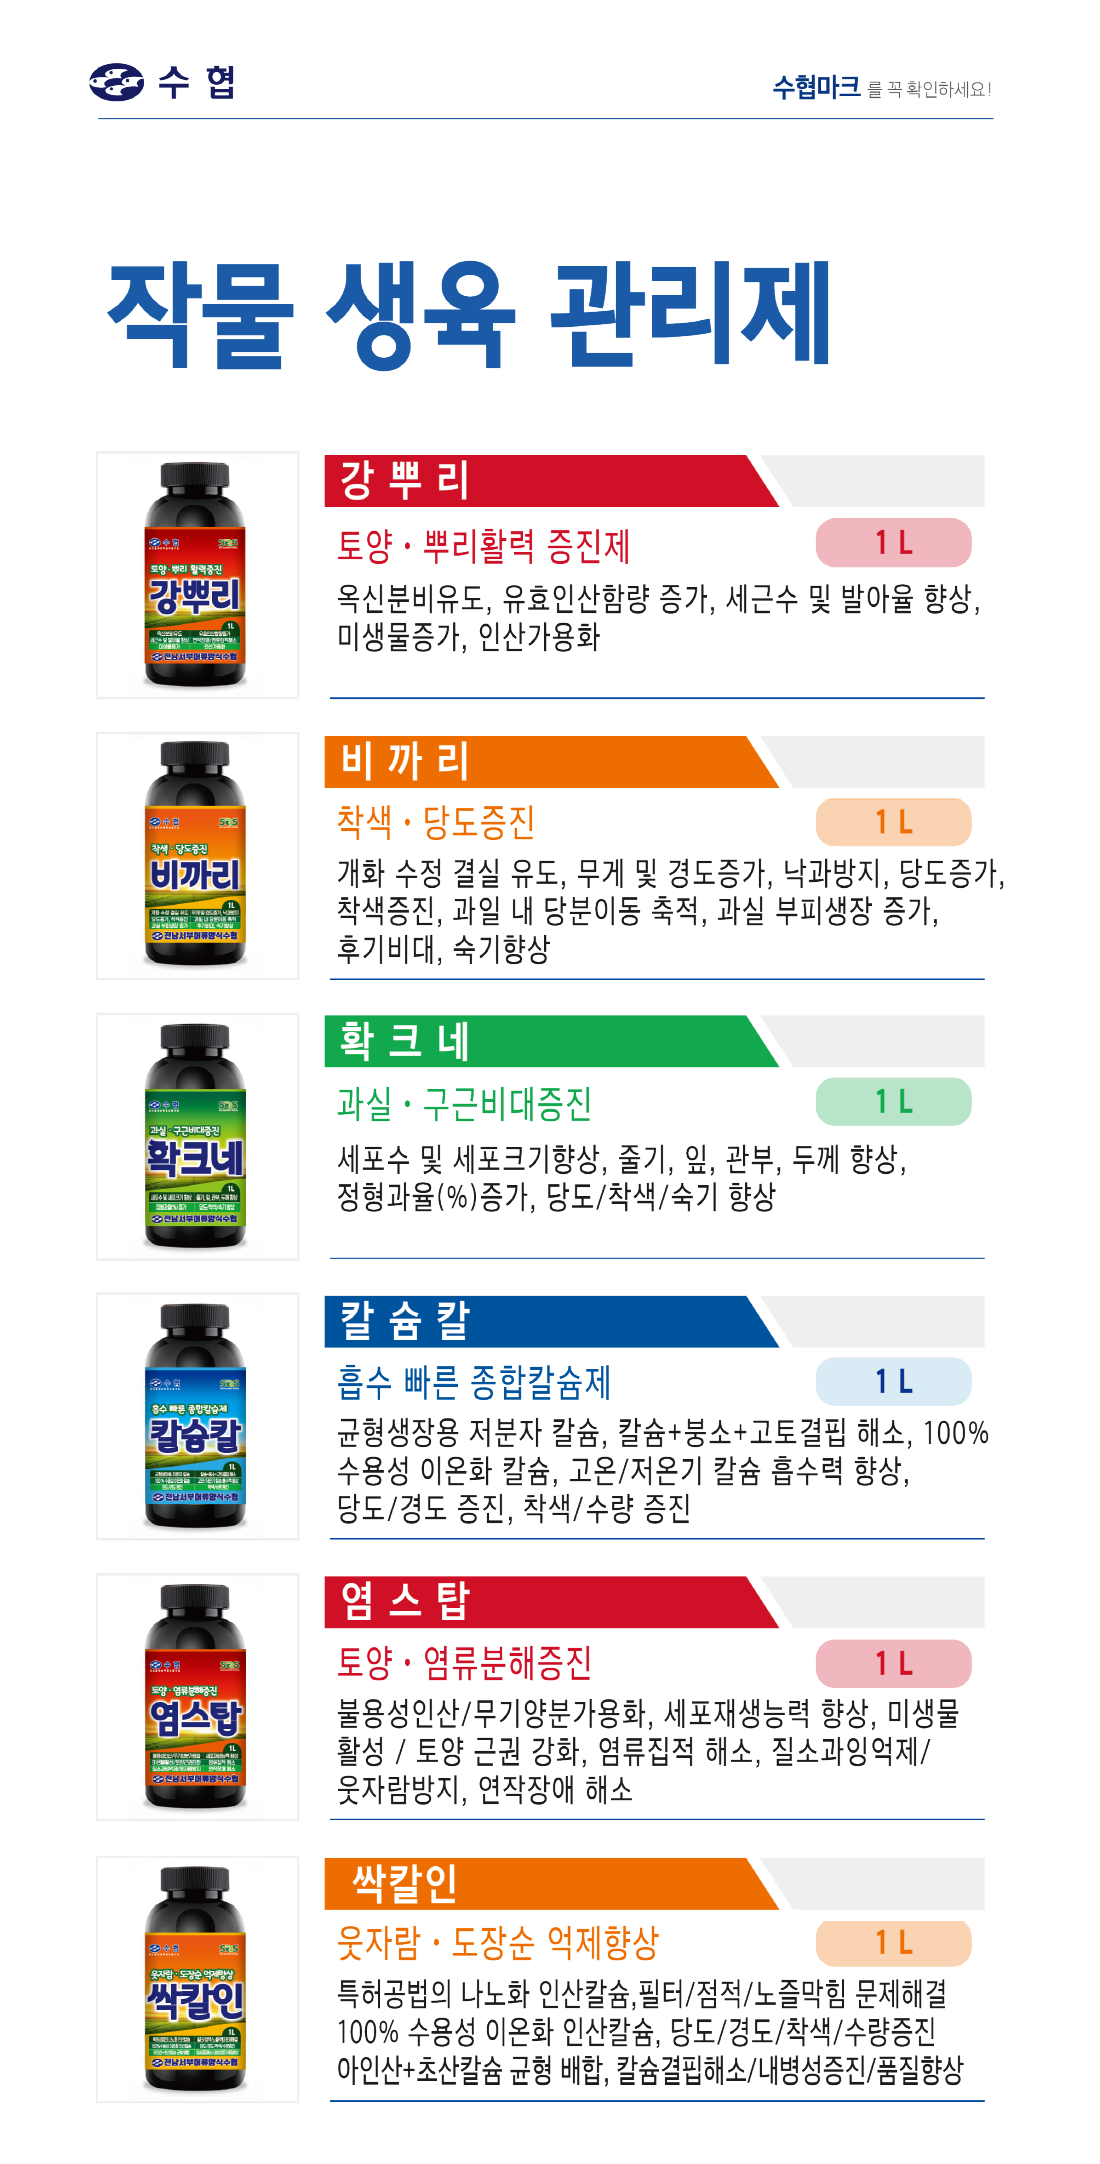 http://suhyup2019.handpr.kr/bs/se2/imgup/1589964642det1_s.png